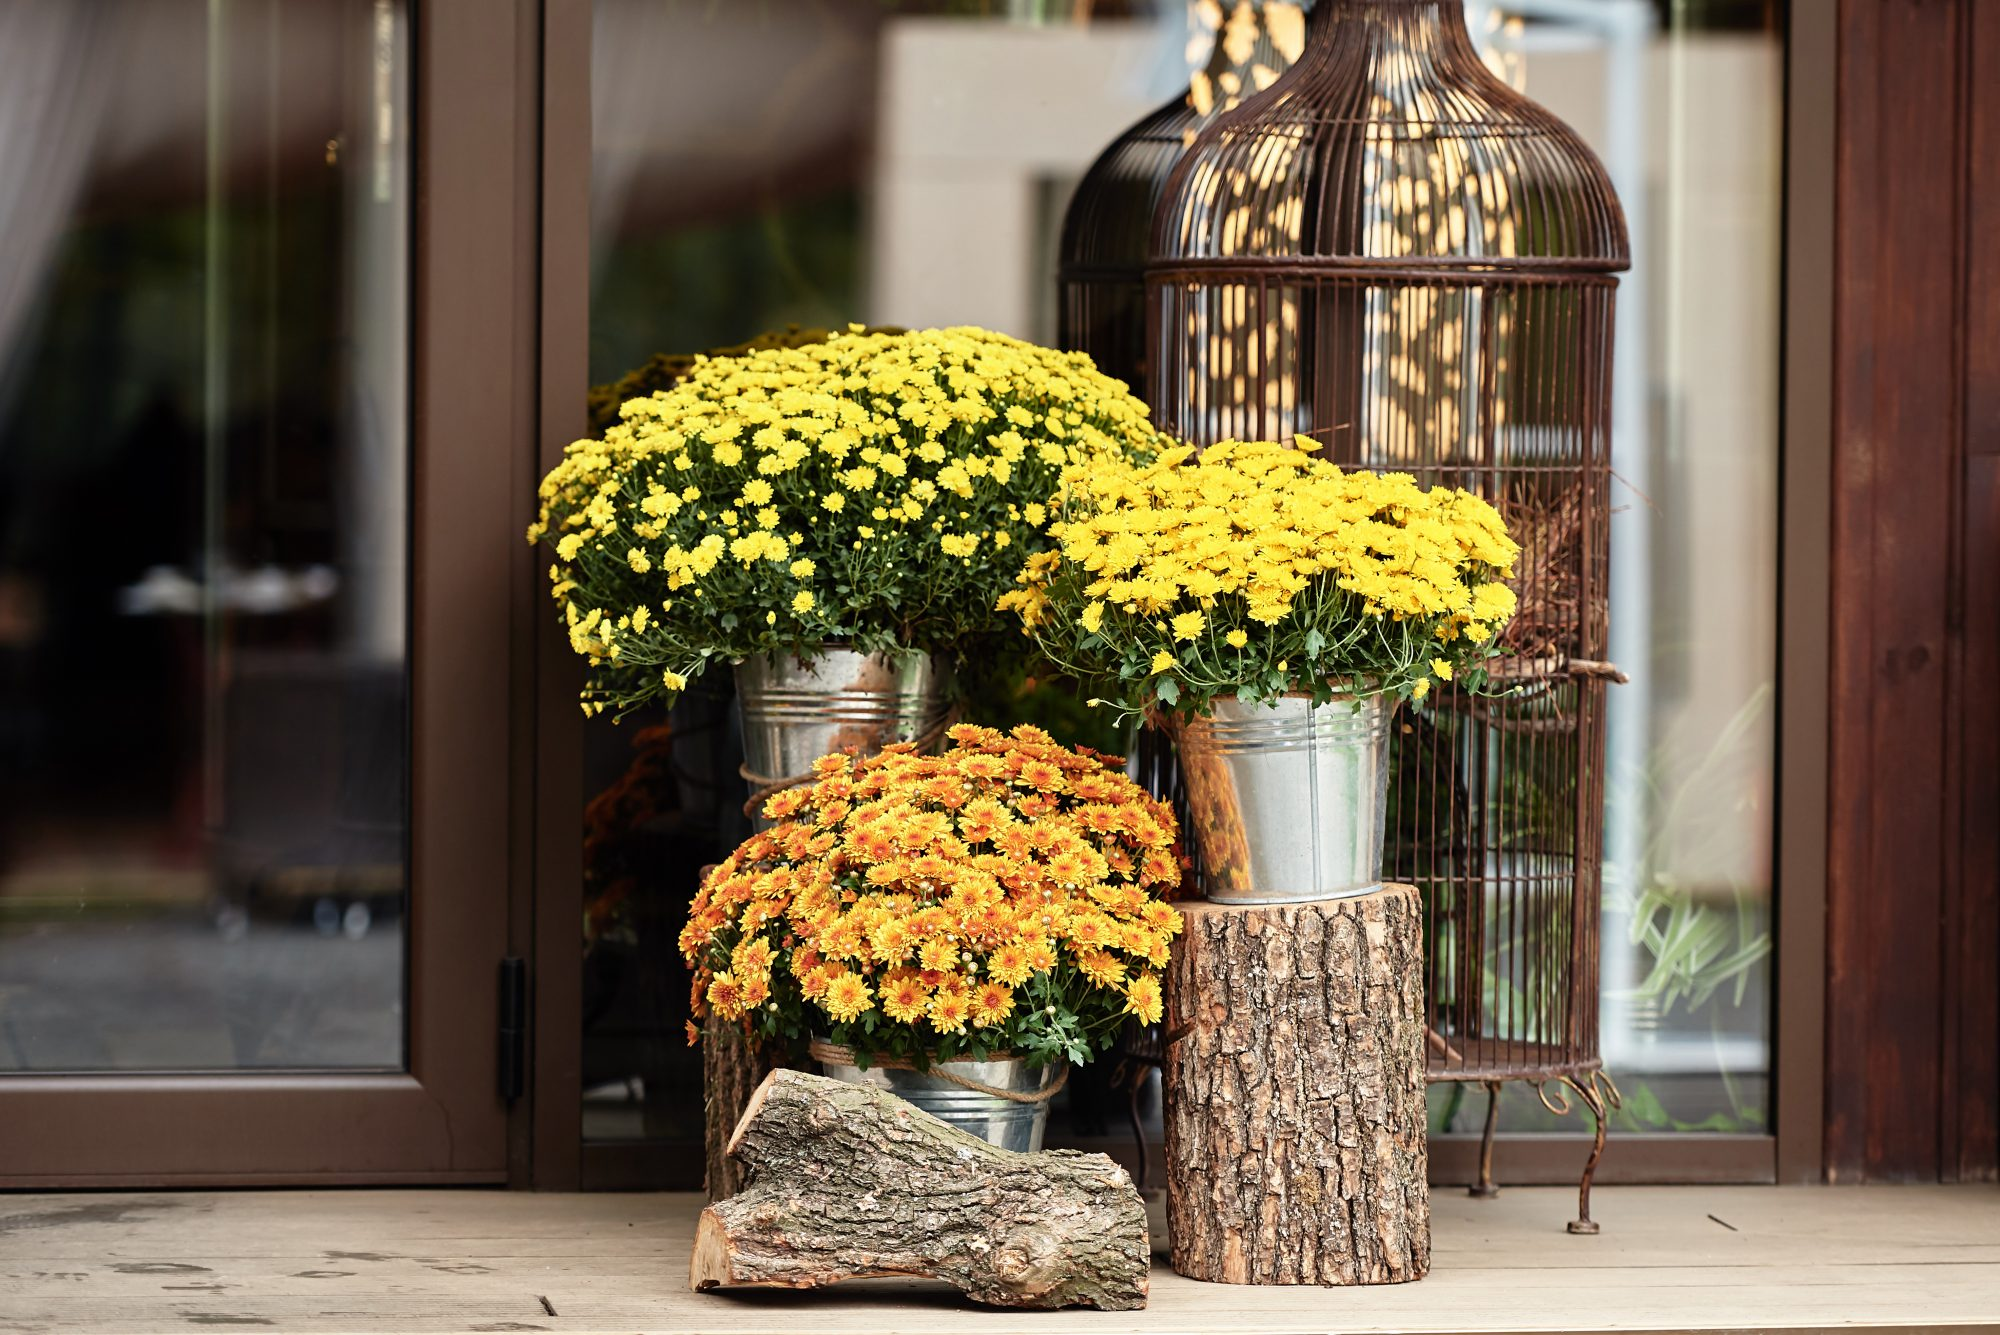 How to Put Together a Show-Stopping Fall Planter